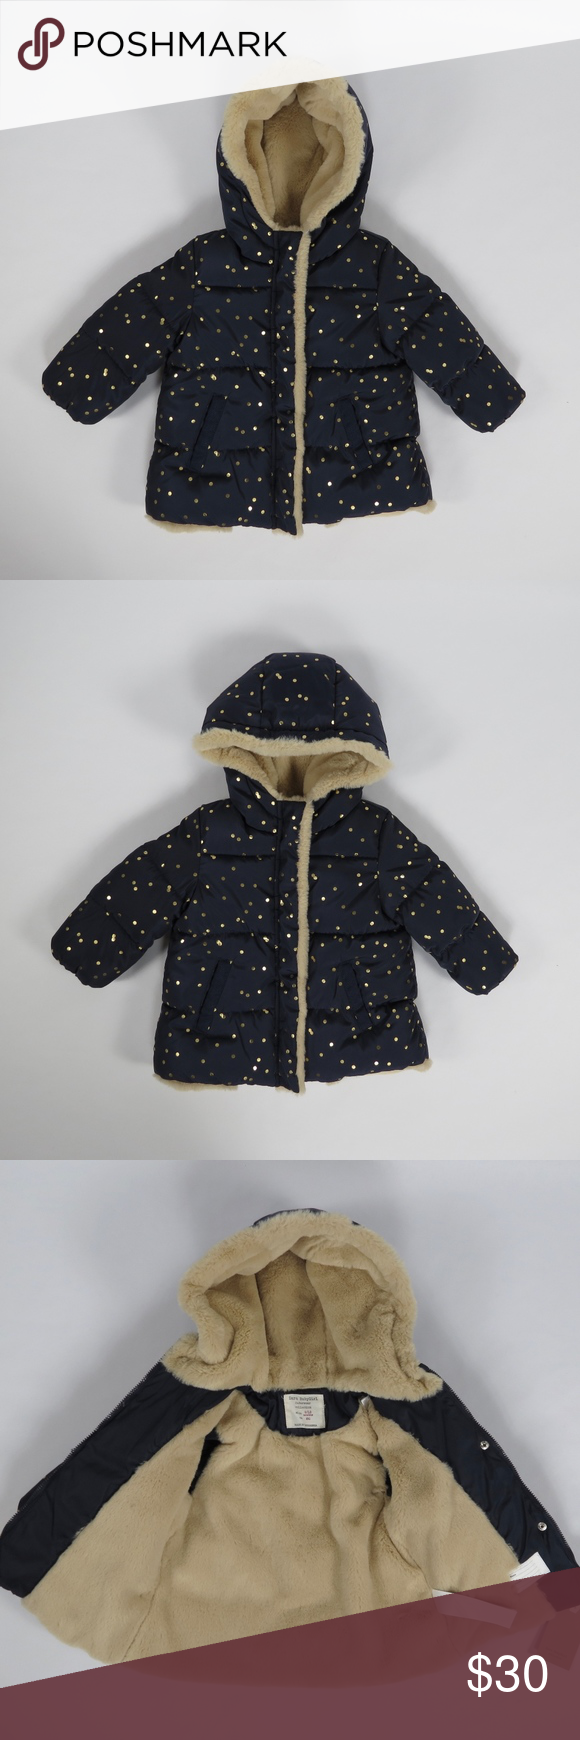 df0654f8751c Zara Baby Girl Gold Dot Navy Puffer Coat 9-12m NWT